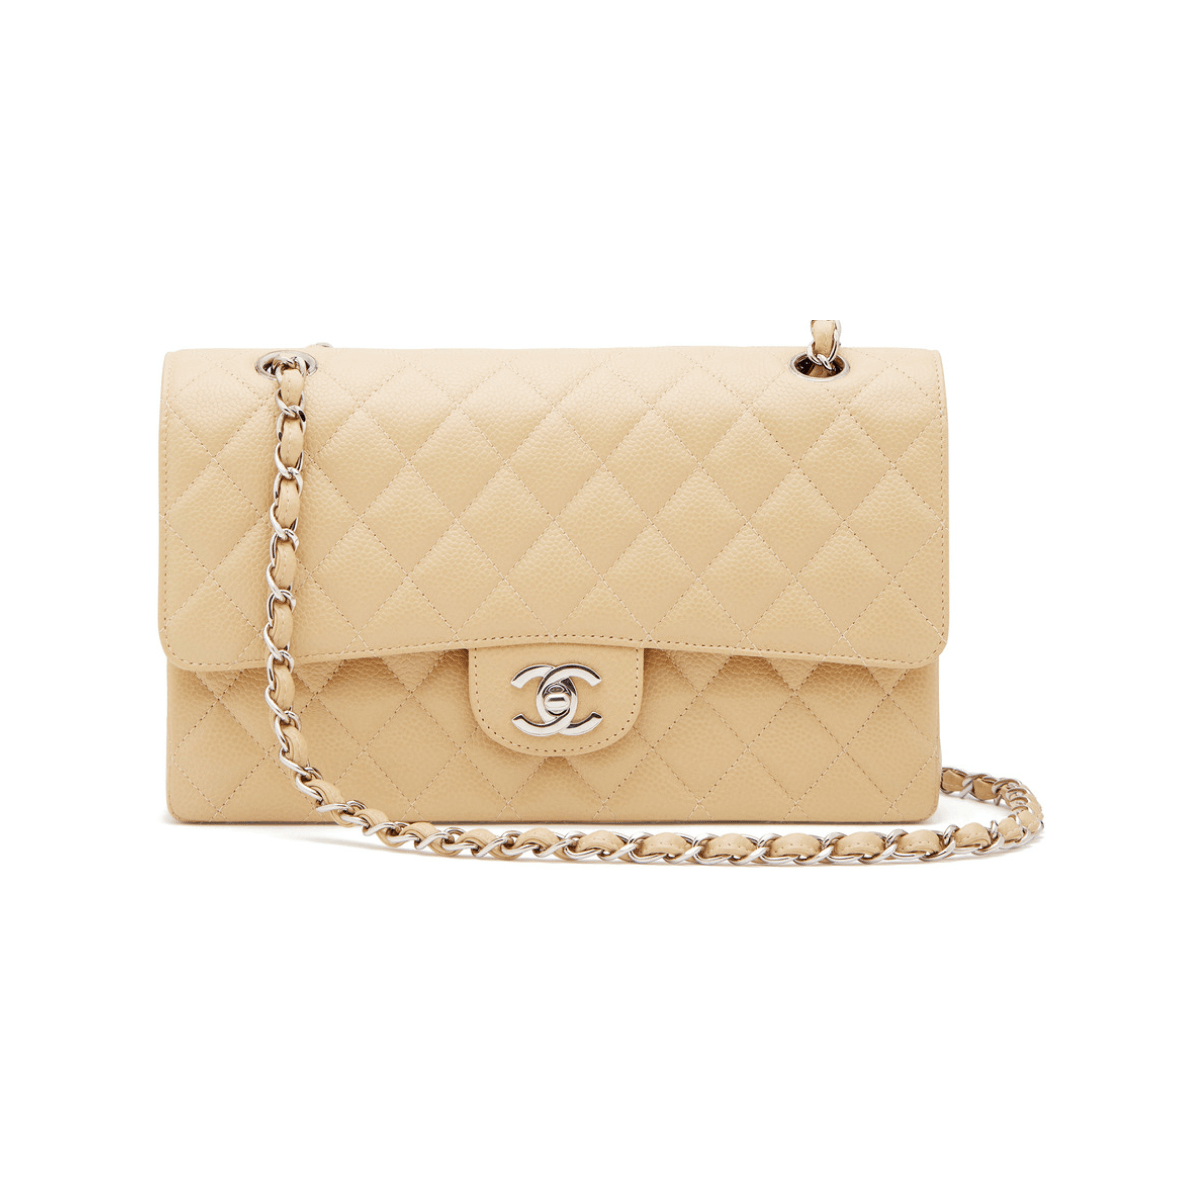 WHAT GOES AROUND COMES AROUND CHANEL BAG